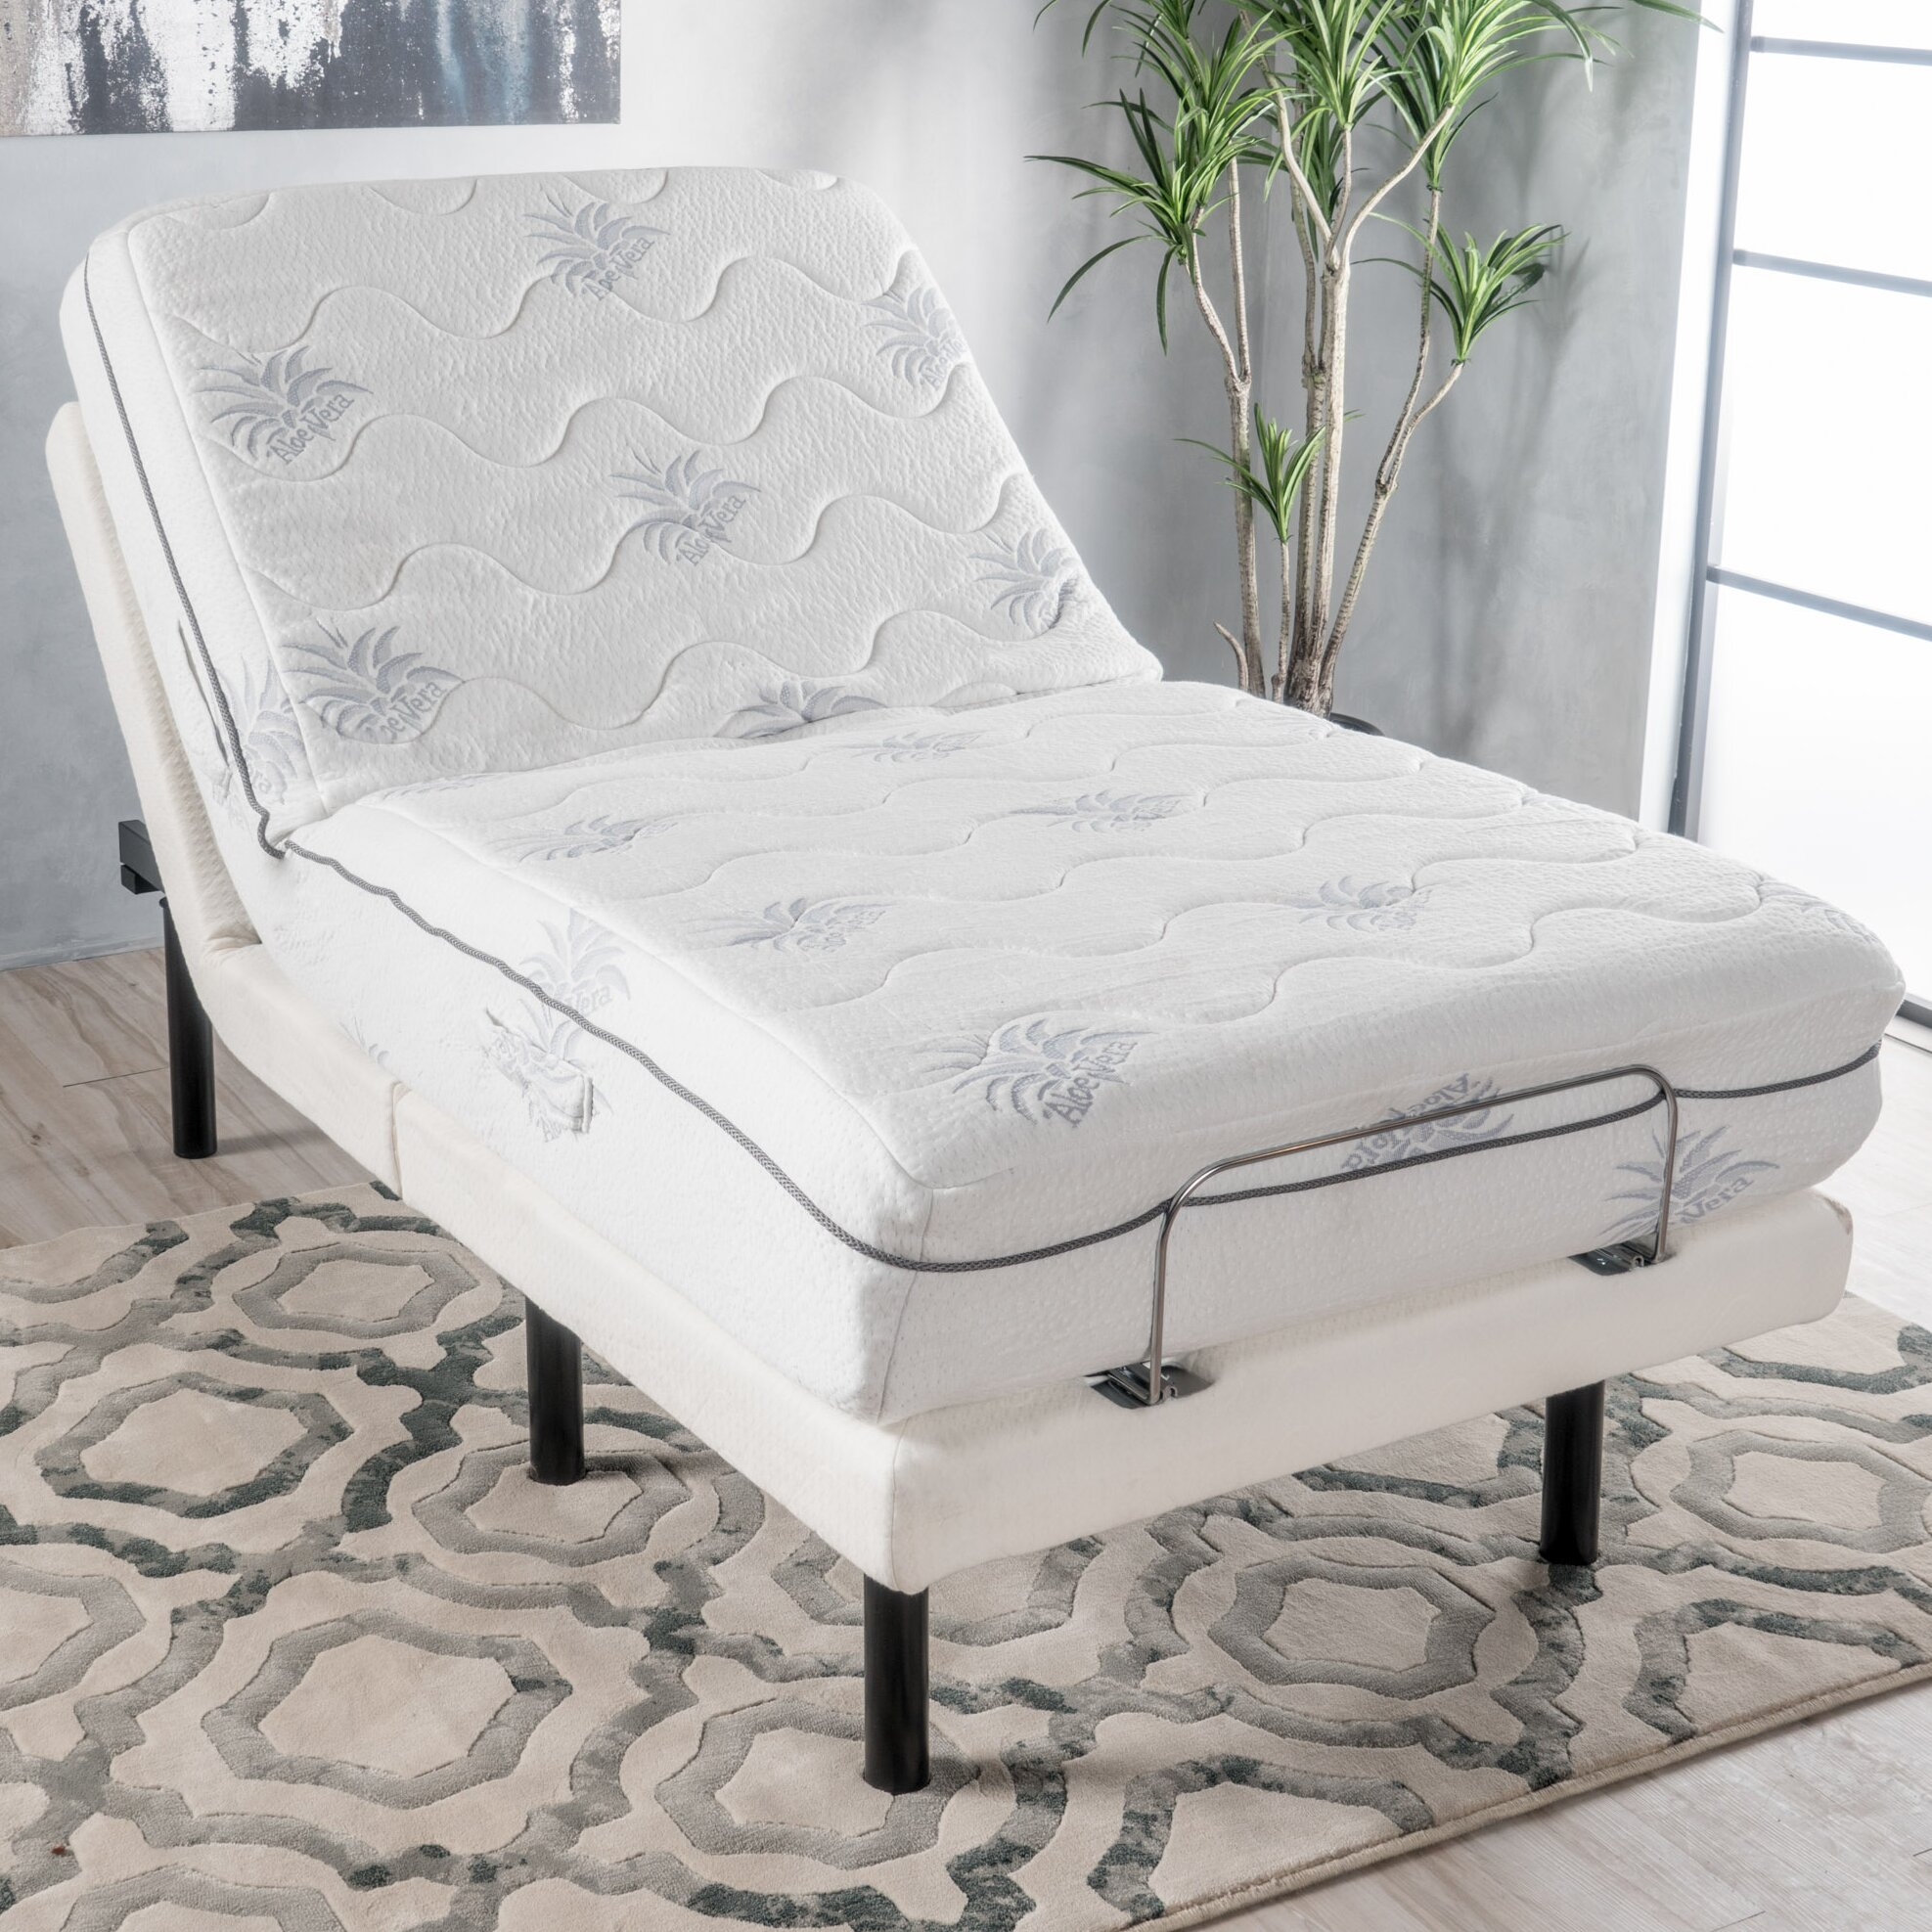 Symple Stuff Extra Long Twin Upholstered Sleigh Bed Wayfair